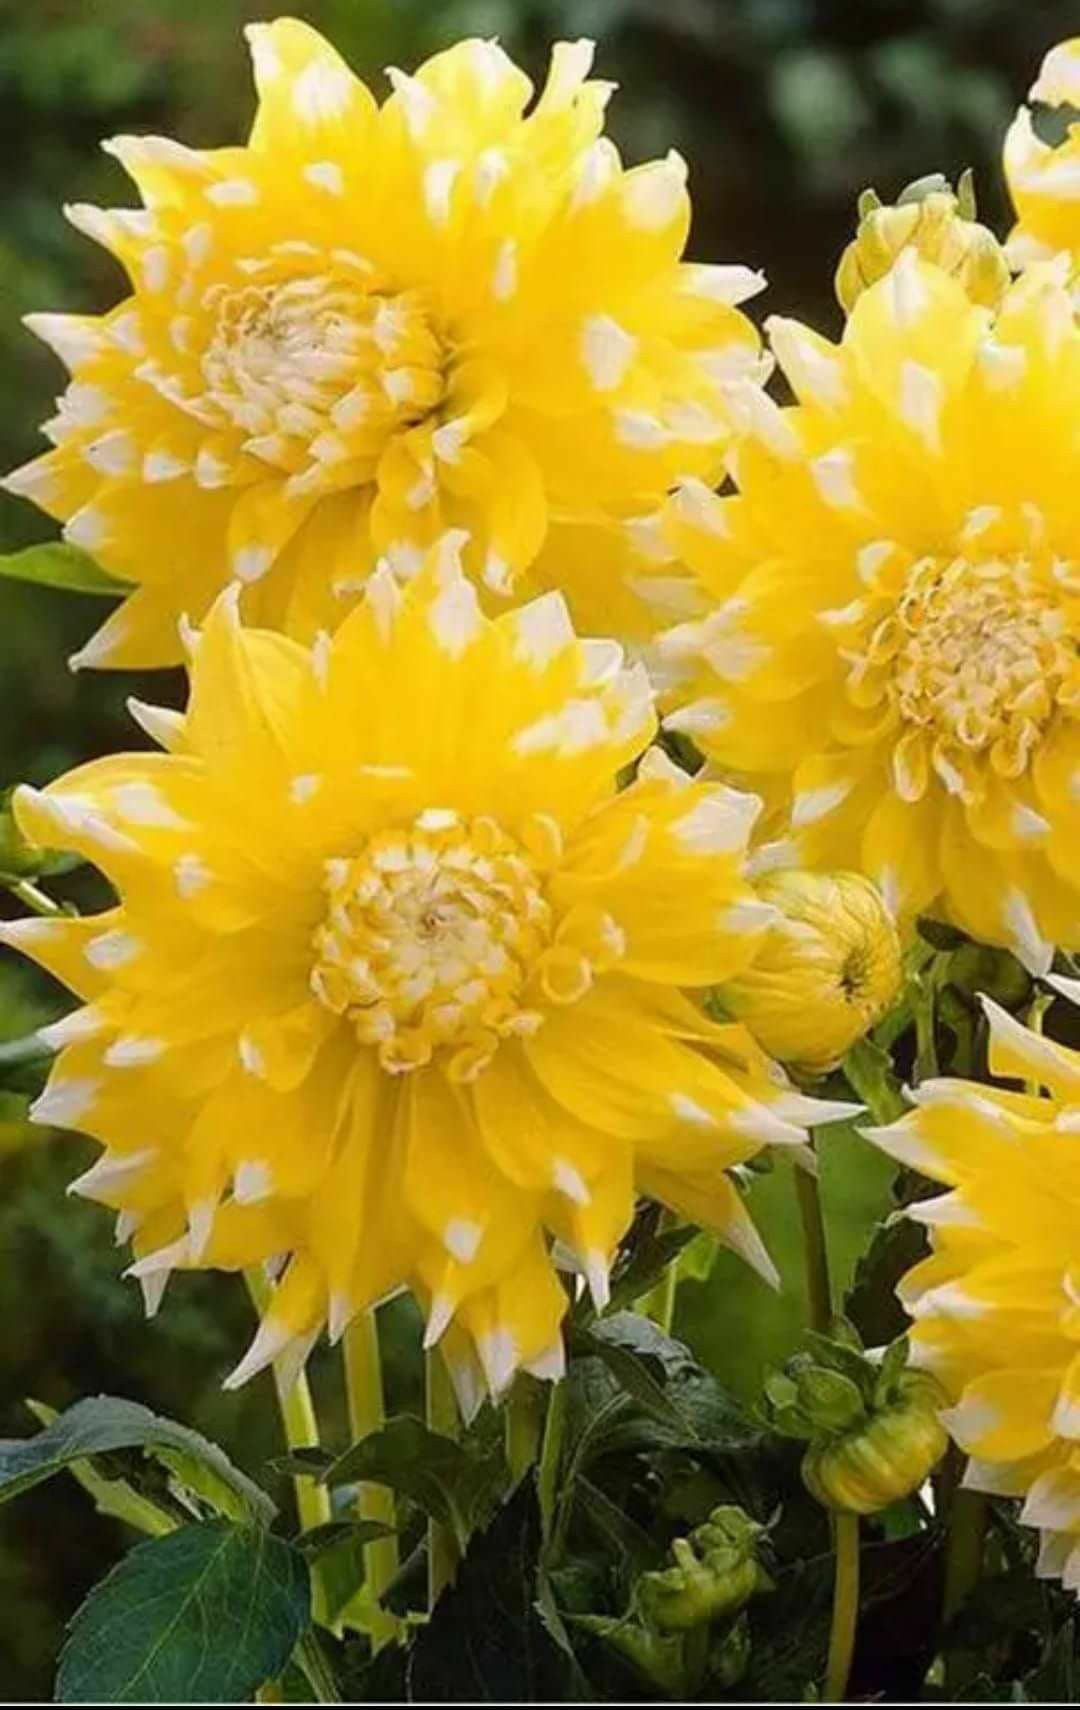 Giant yellow dahlias garden pinterest dahlia flowers and gardens giant yellow dahlias izmirmasajfo